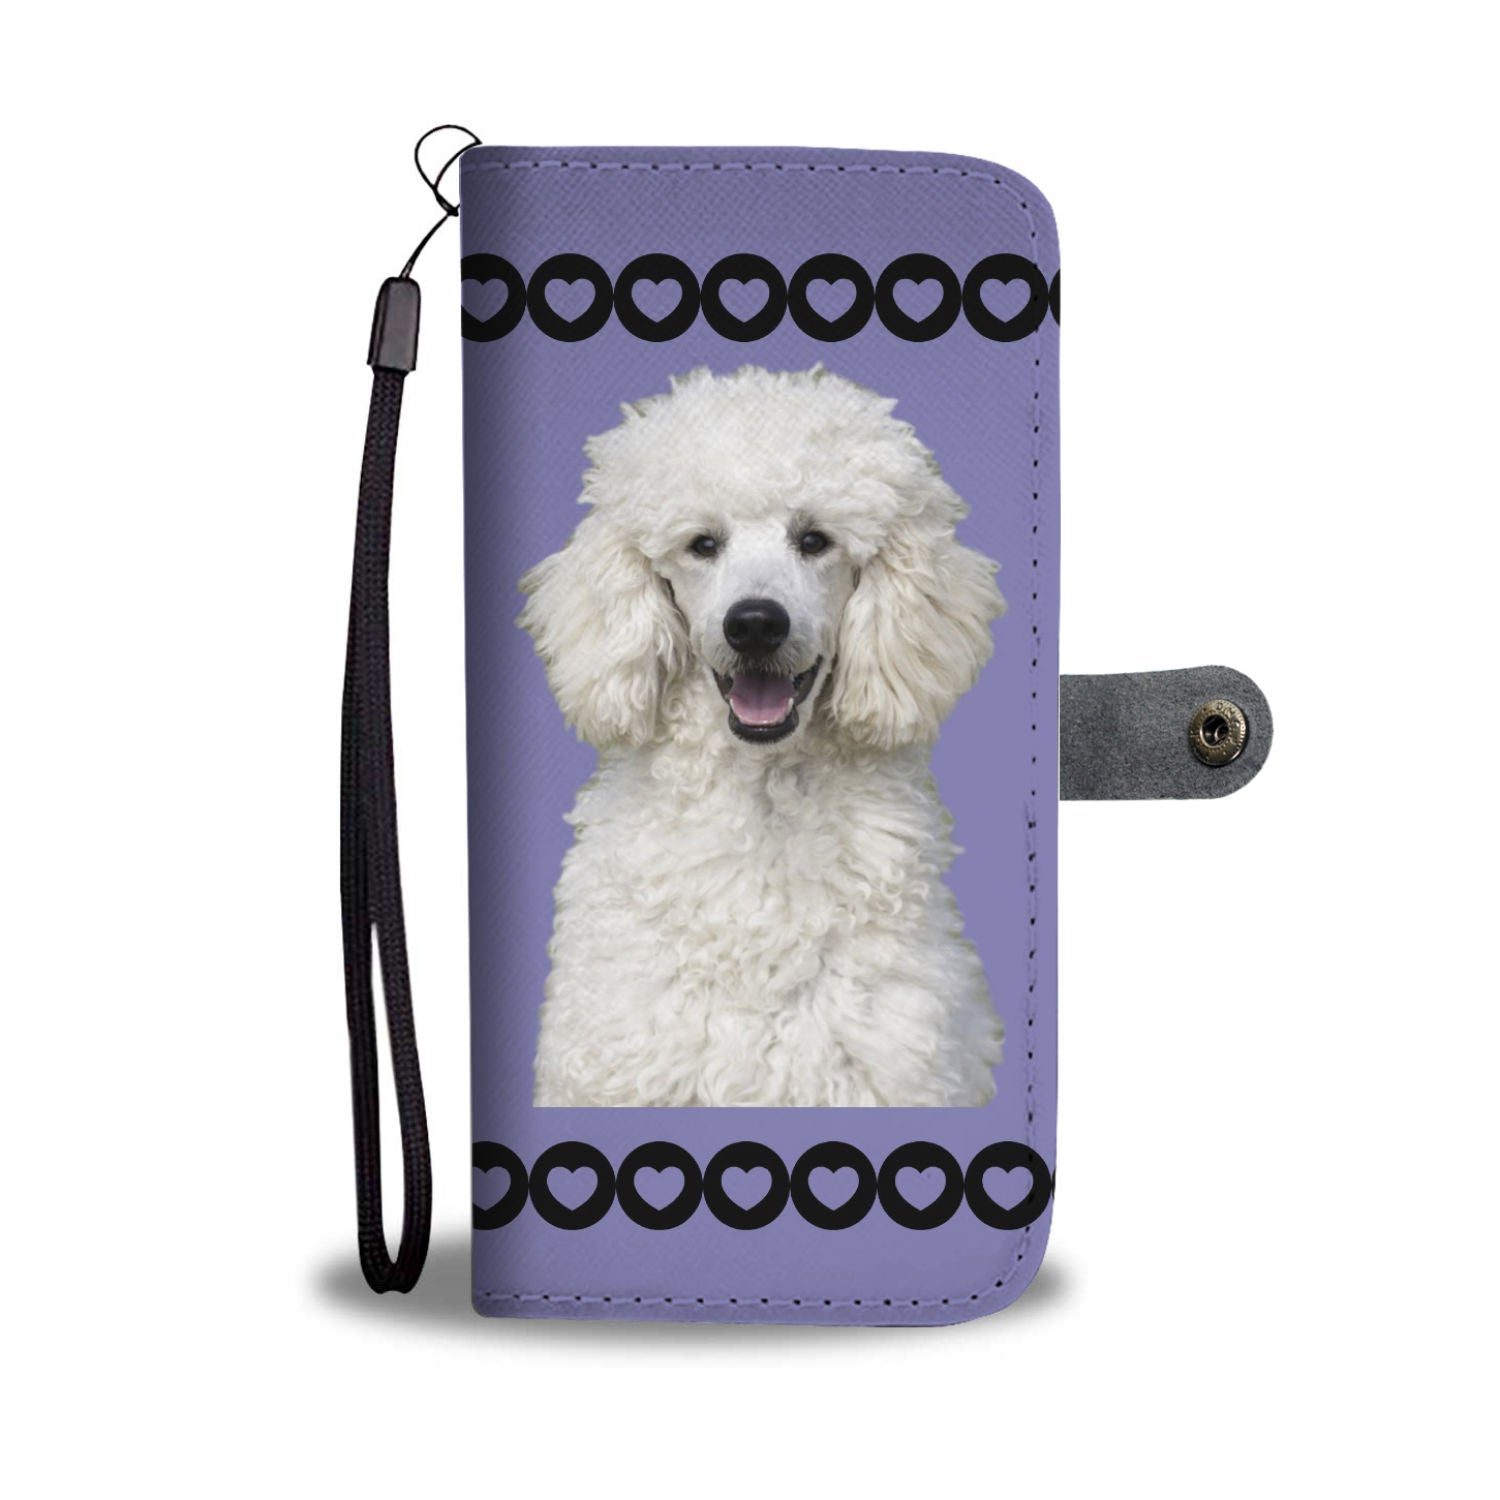 Poodle Phone Case Wallet - Standard White